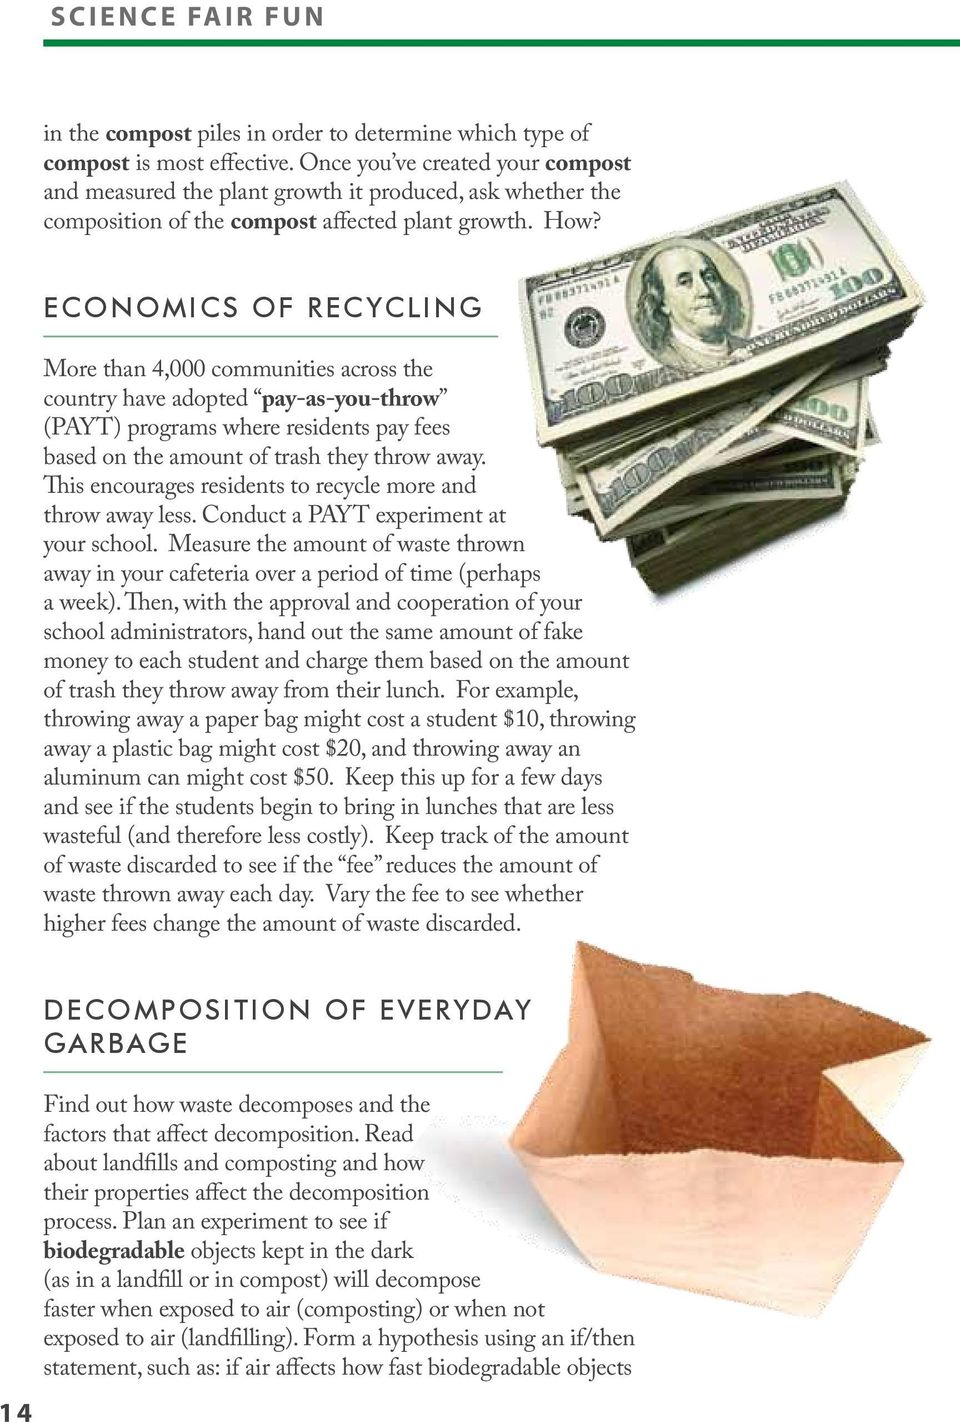 ECoNomICS of recycling More than 4,000 communities across the country have adopted pay-as-you-throw (PAYT) programs where residents pay fees based on the amount of trash they throw away.